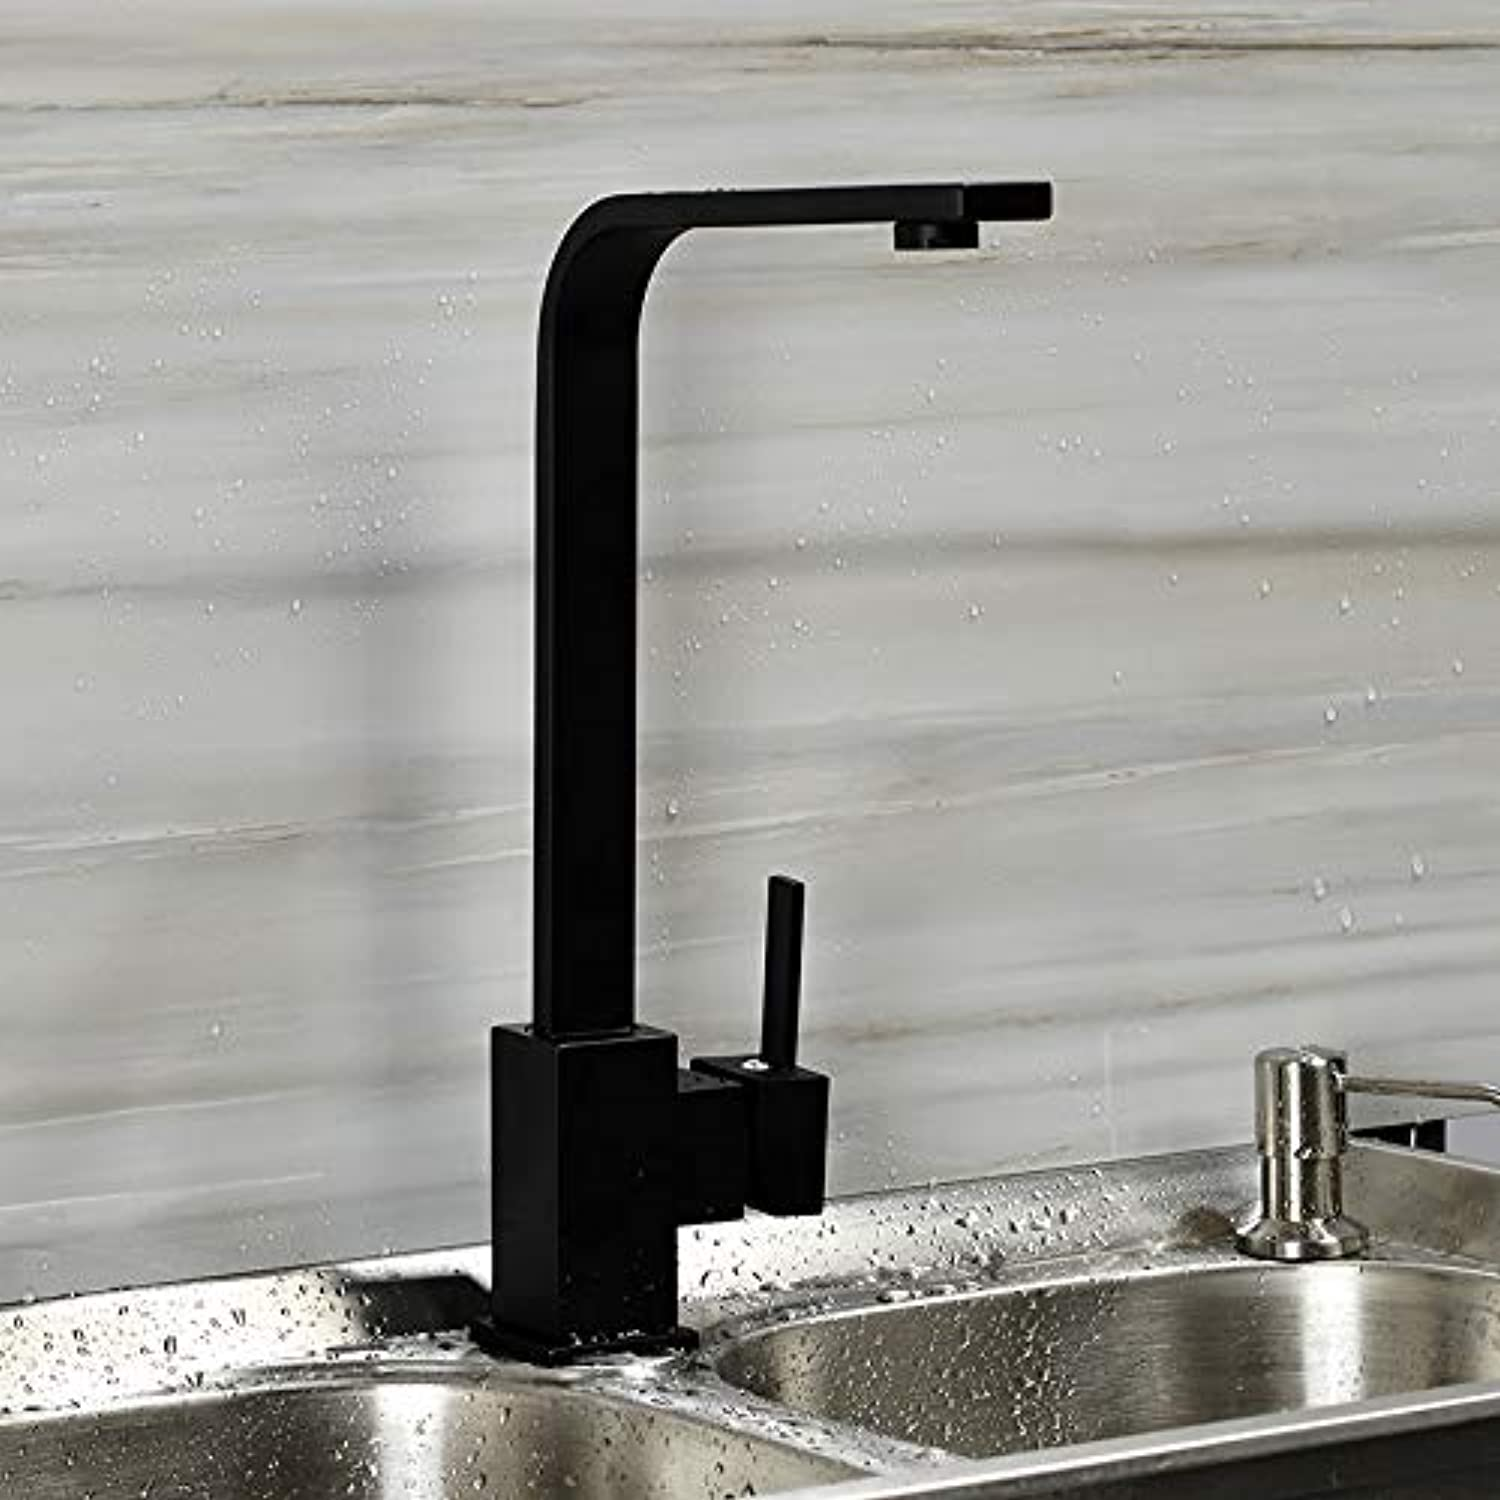 Decorry Black Square Kitchen Faucets 360 Degree redation Tap Water Faucets Solid Brass Kitchen Sink Tap Water Mixer G2034